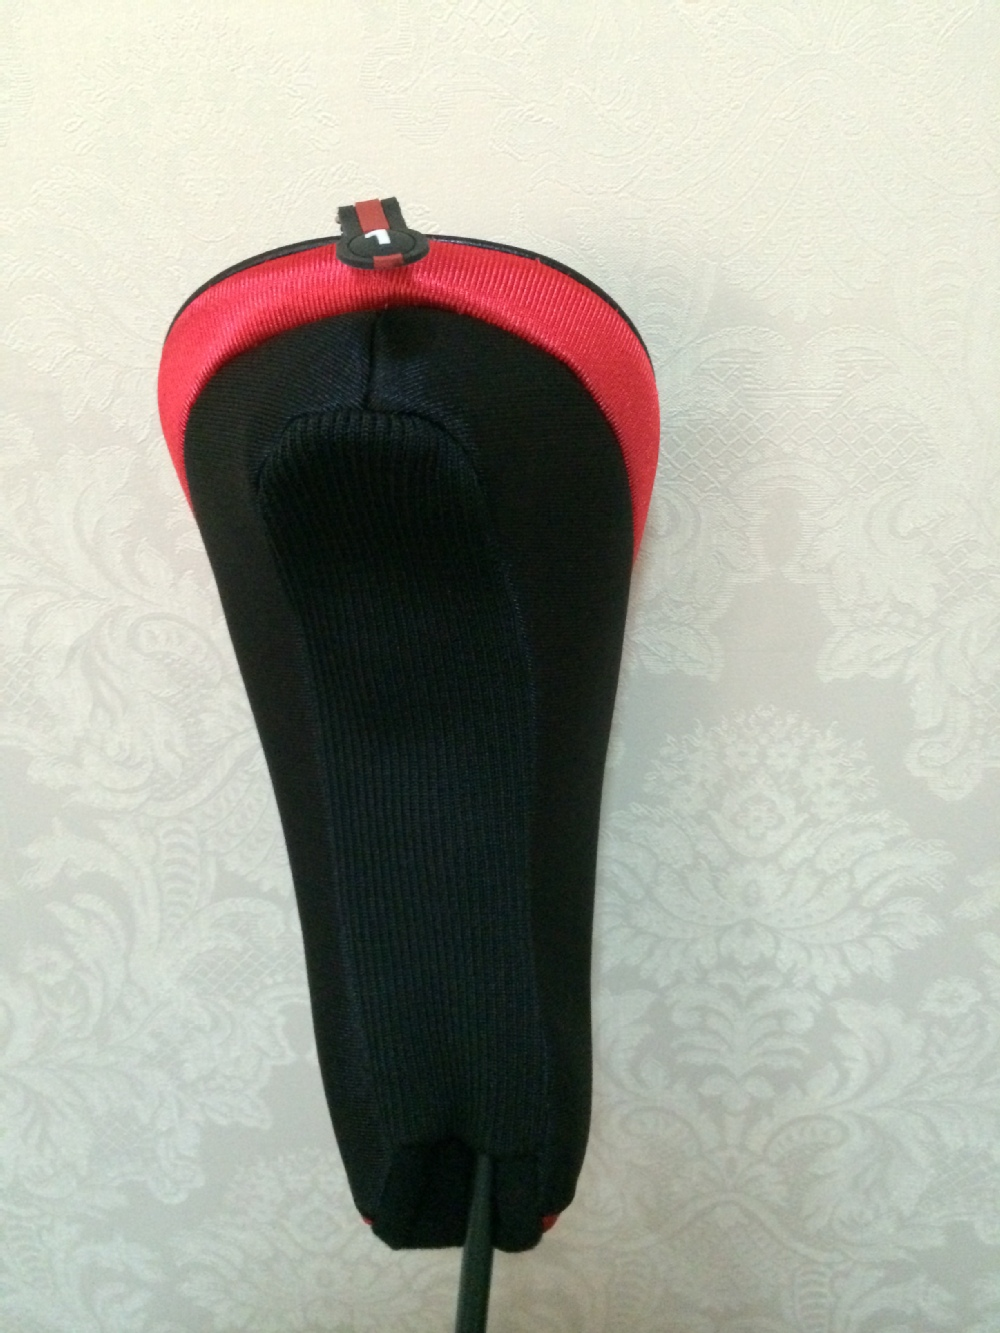 Newest design classic black red golf head cover